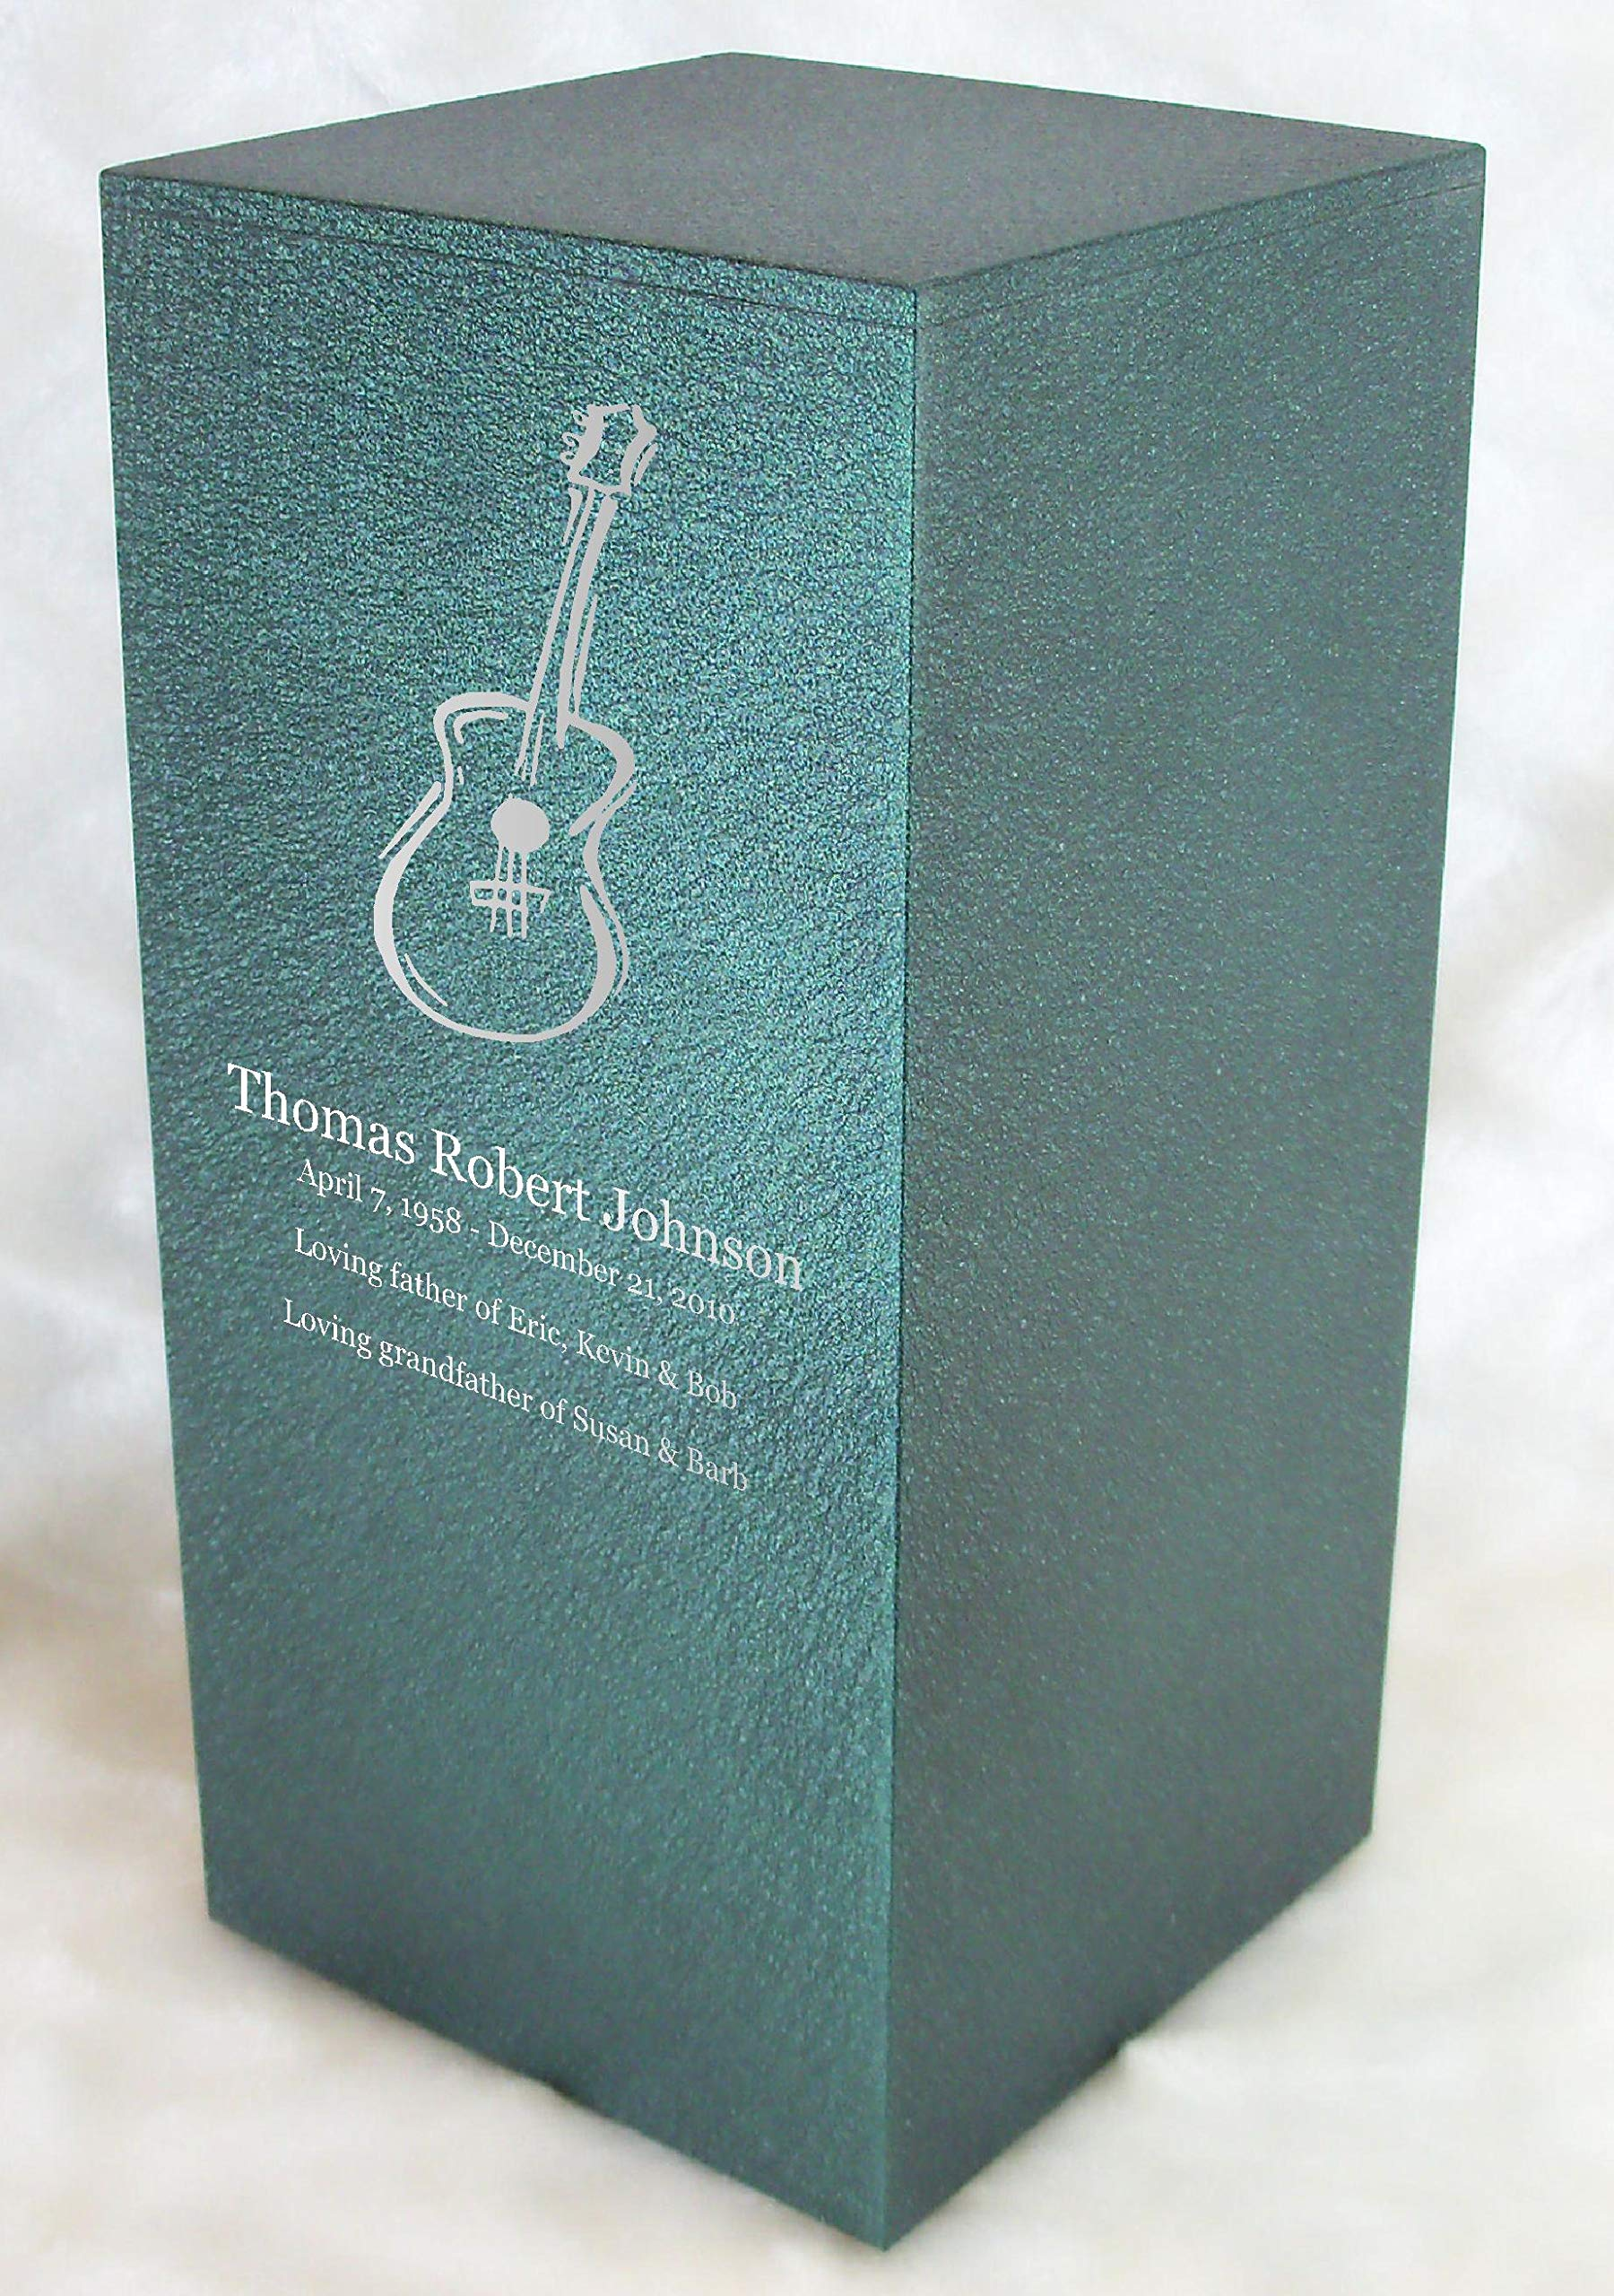 Personalized Engraved Guitar Cremation Urn for Human Ashes - Made in America - Handcrafted in The USA by Amaranthine Urns, Adult Funeral Urn - Eaton DL (up to 200 lbs Living Weight) (Forest Green) by Amaranthine Urn Company (Image #1)